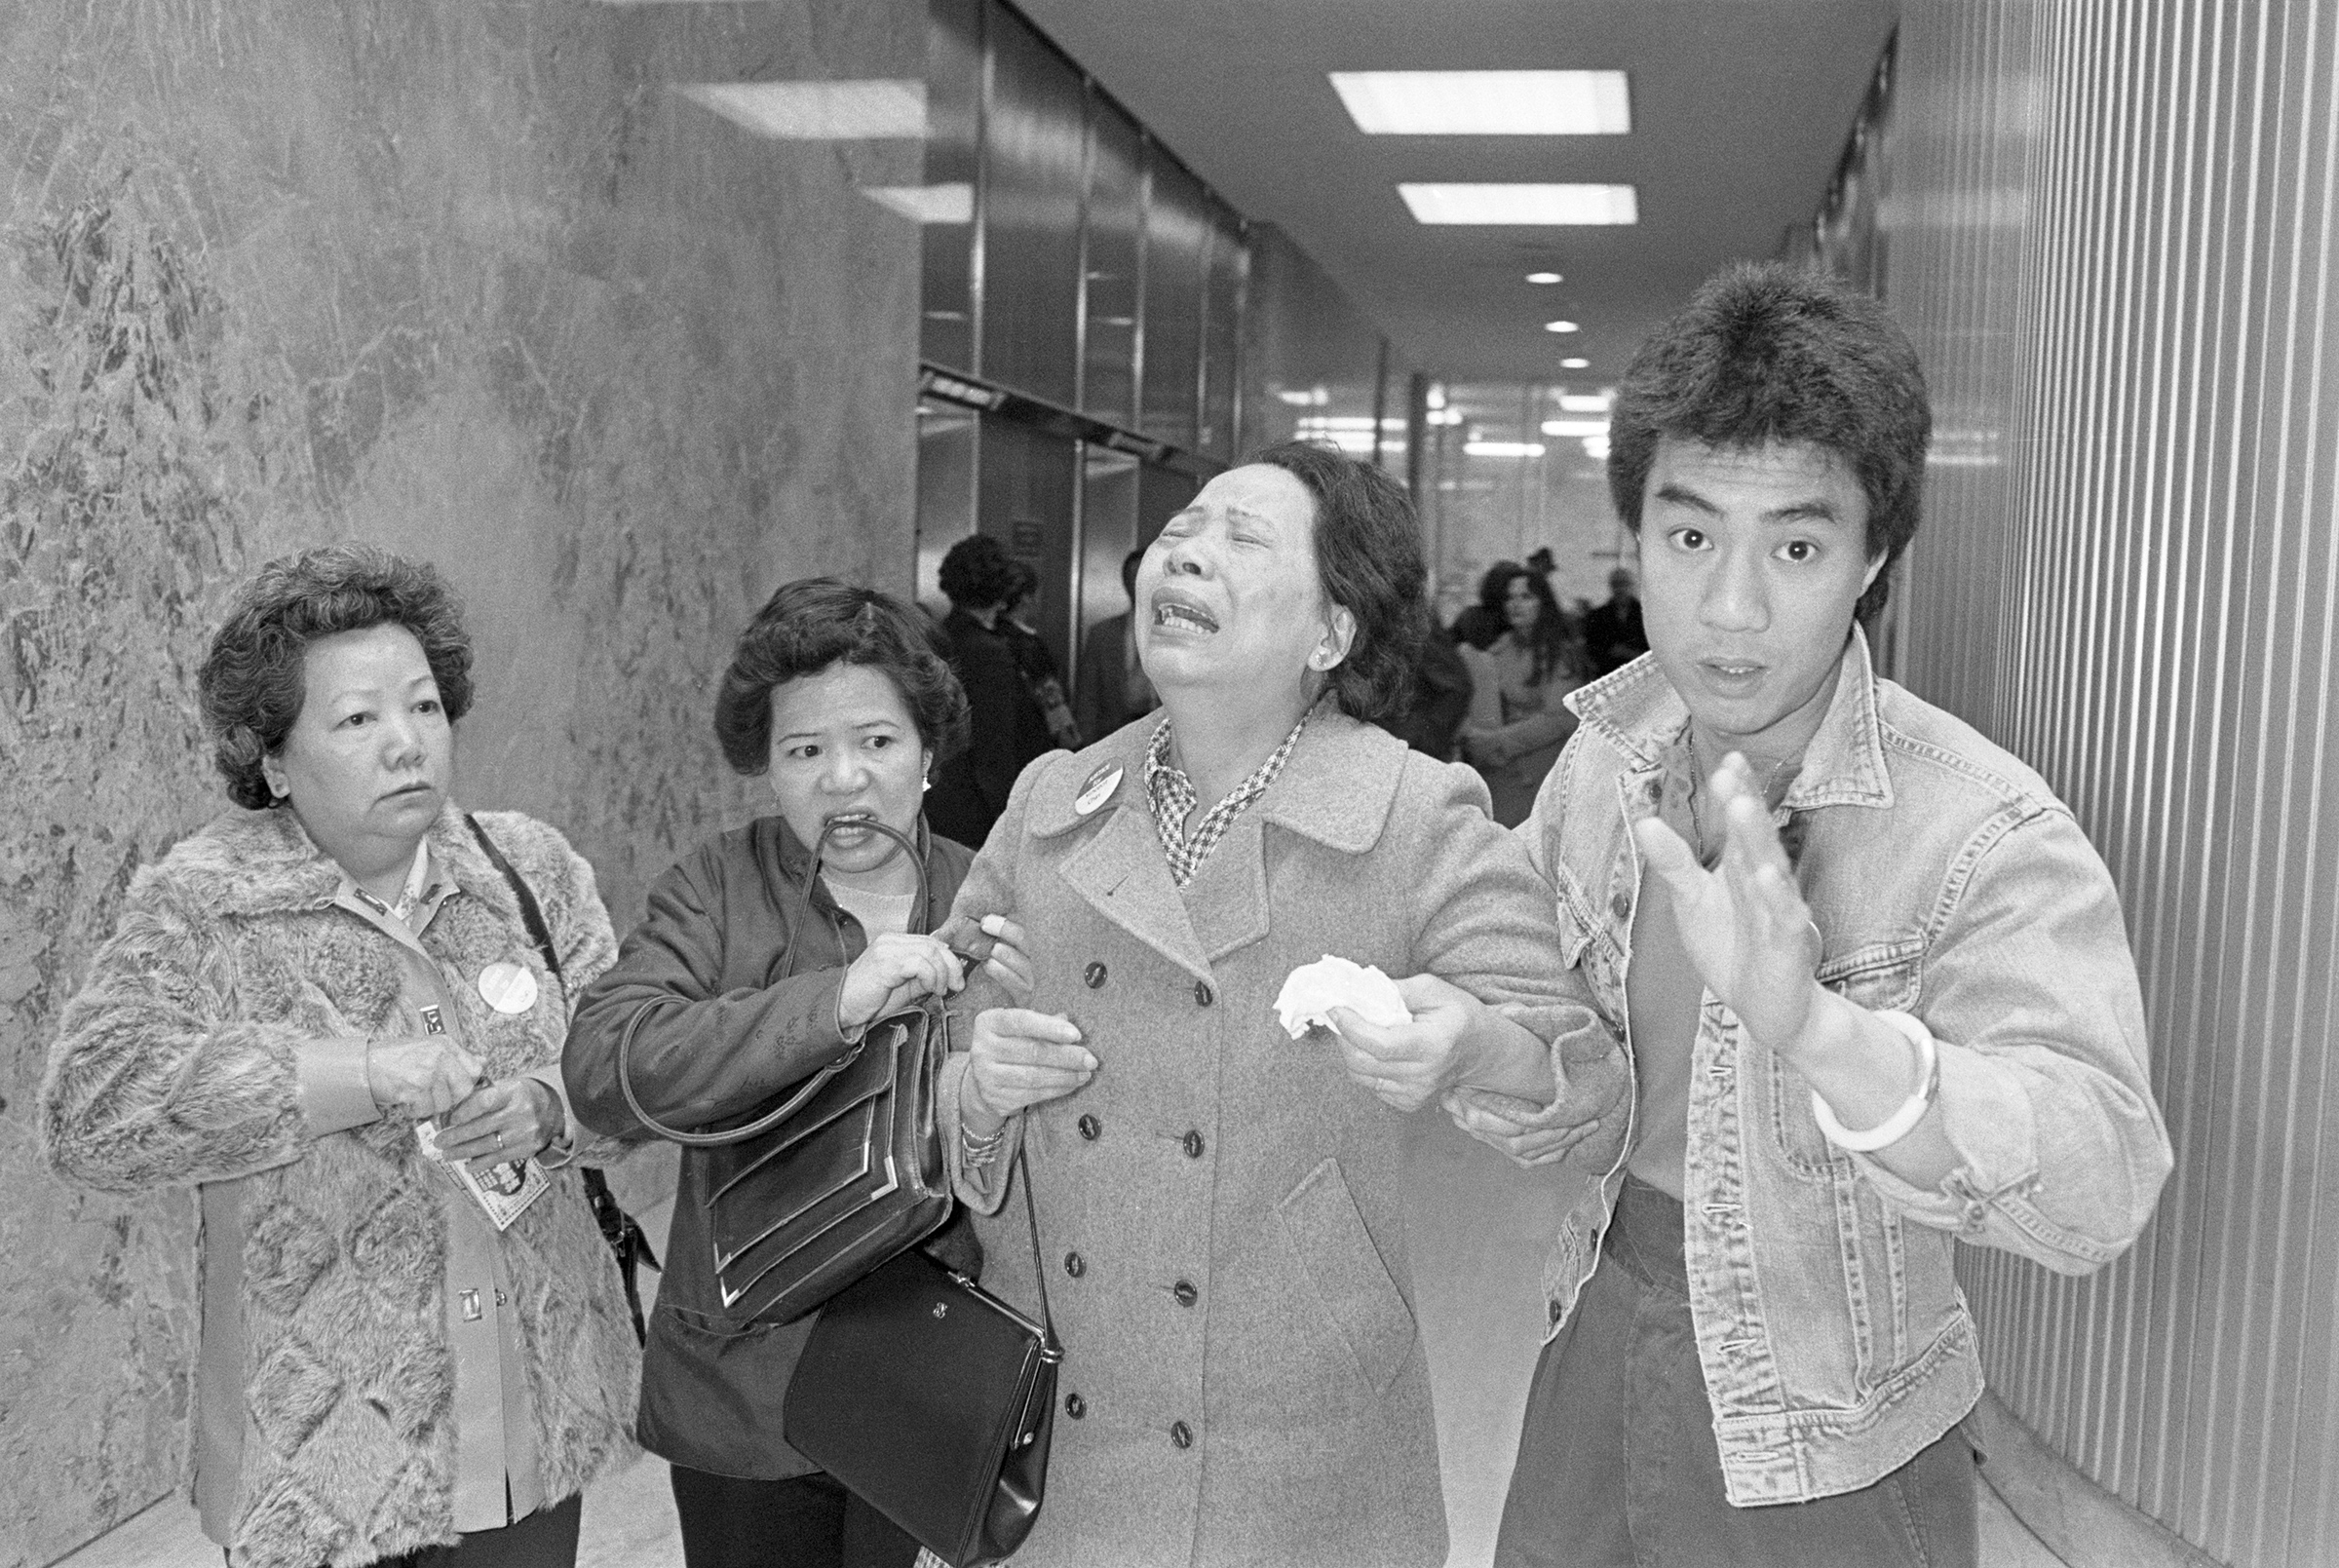 Lillie Chin, mother of Vincent Chin, who was clubbed to death by two white men in June 1982, breaks down as a relative (L), helps her walk while leaving Detroit's City County Building.